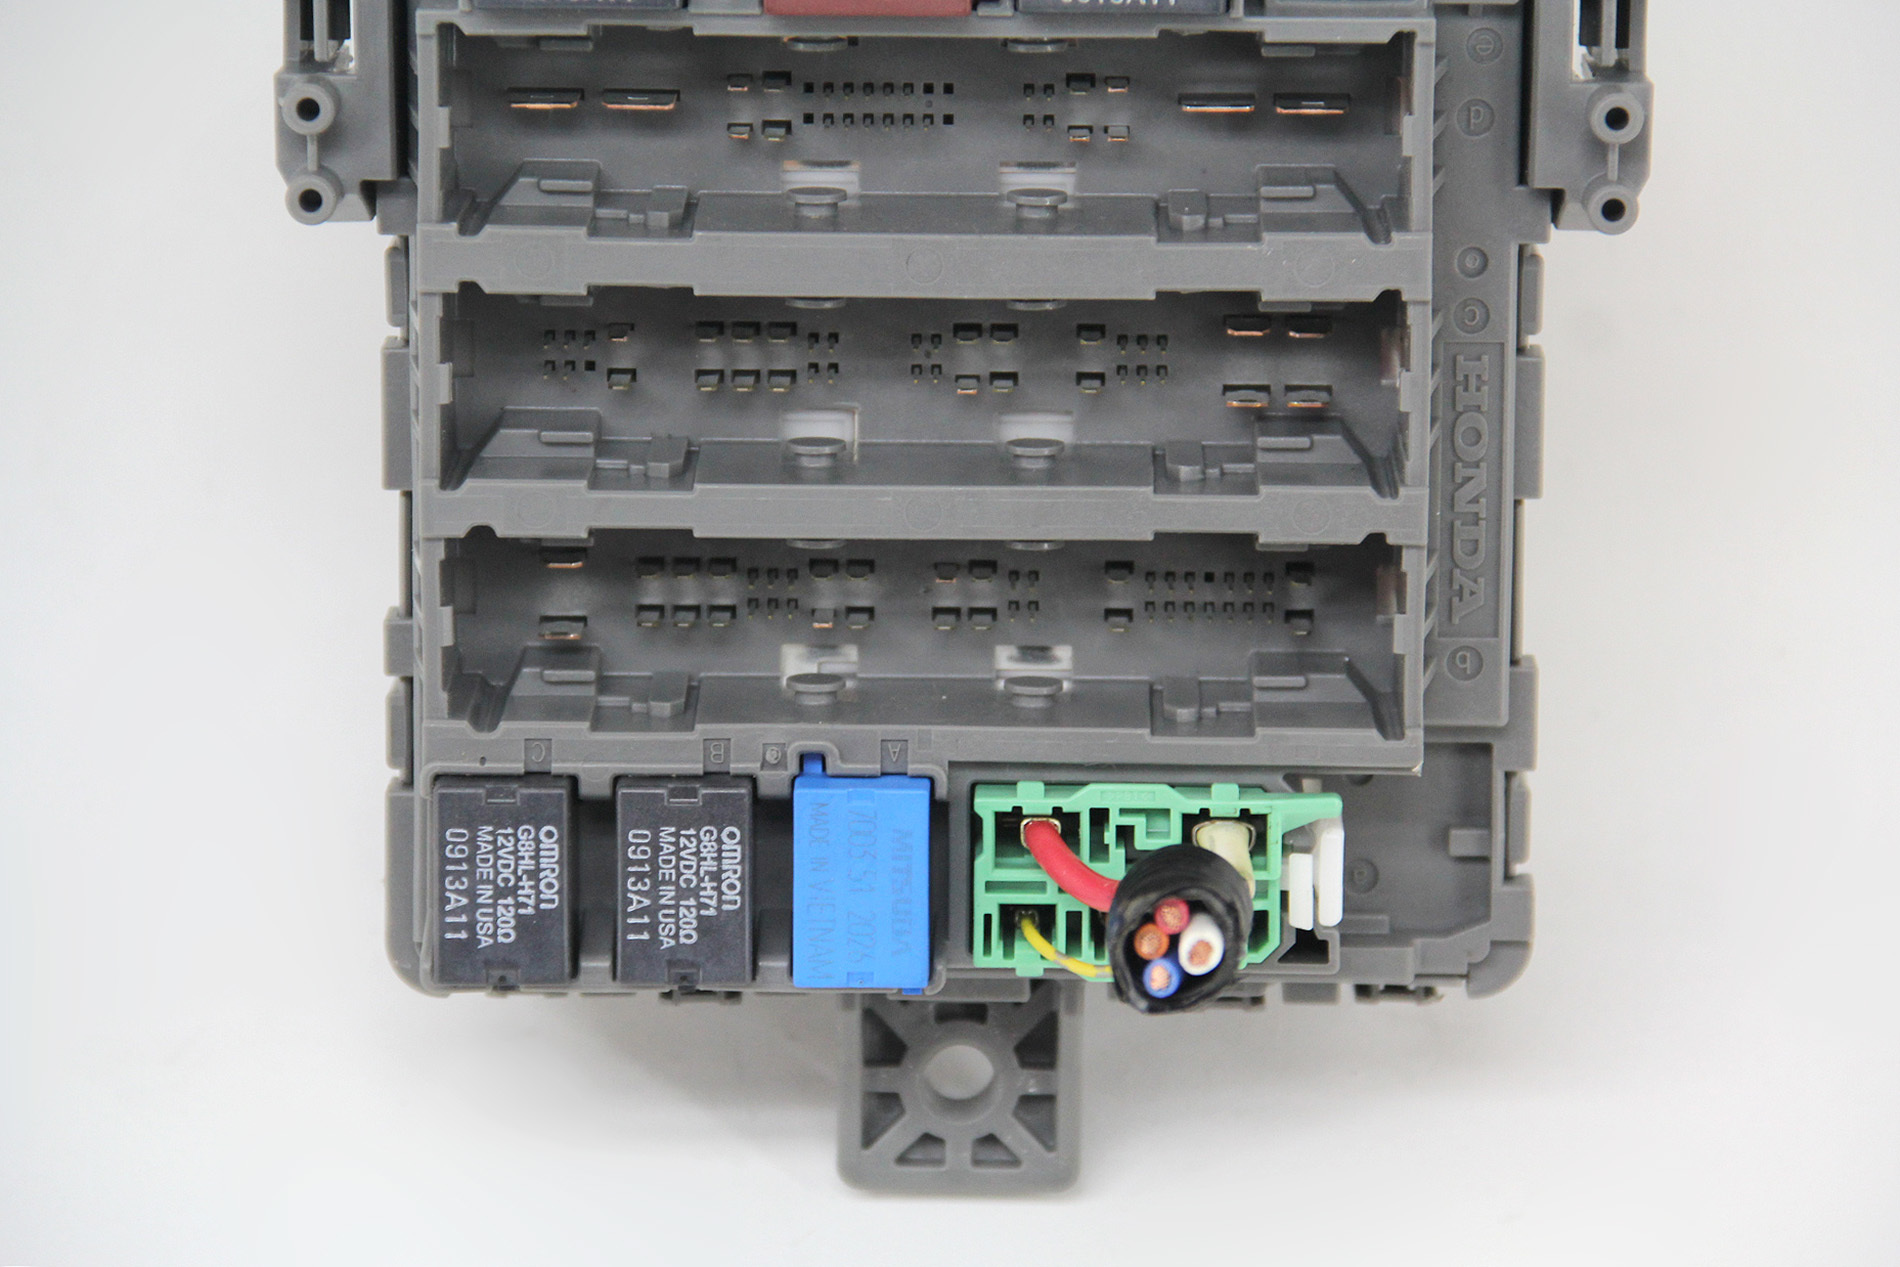 2013 Acura Rdx Fuse Box Wiring Diagram Schematics 2012 Mdx Interior Relay Unit Module Fusebox Base Model Oem Bmw X5